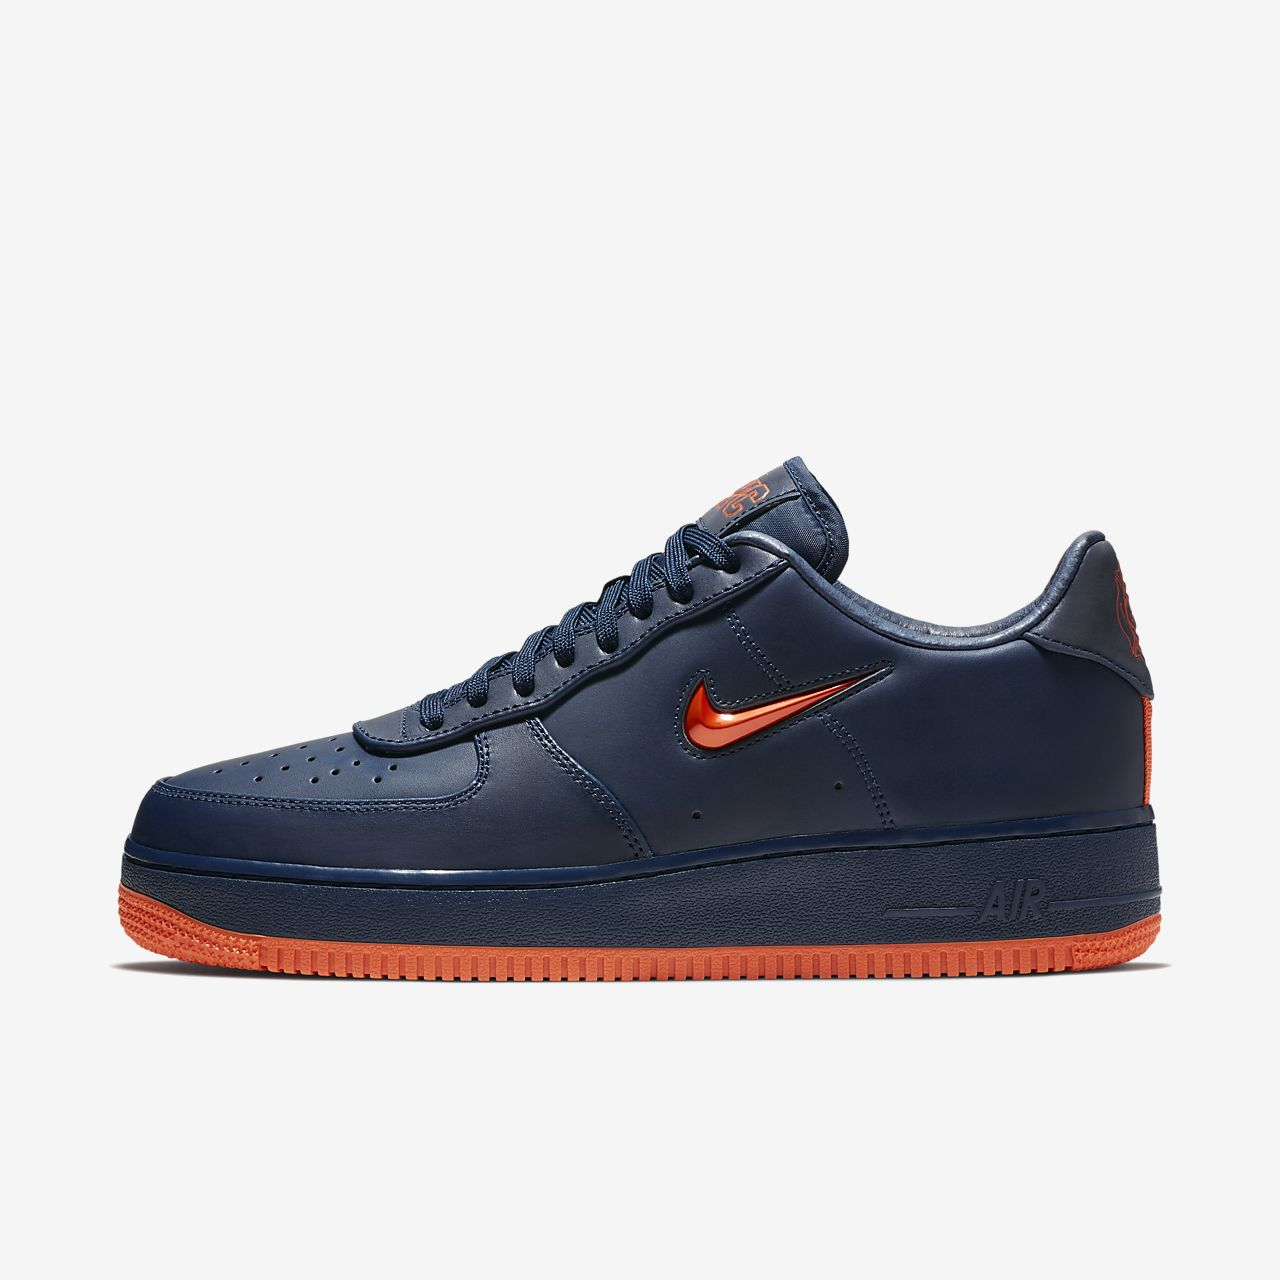 men's nike air force 1 low black